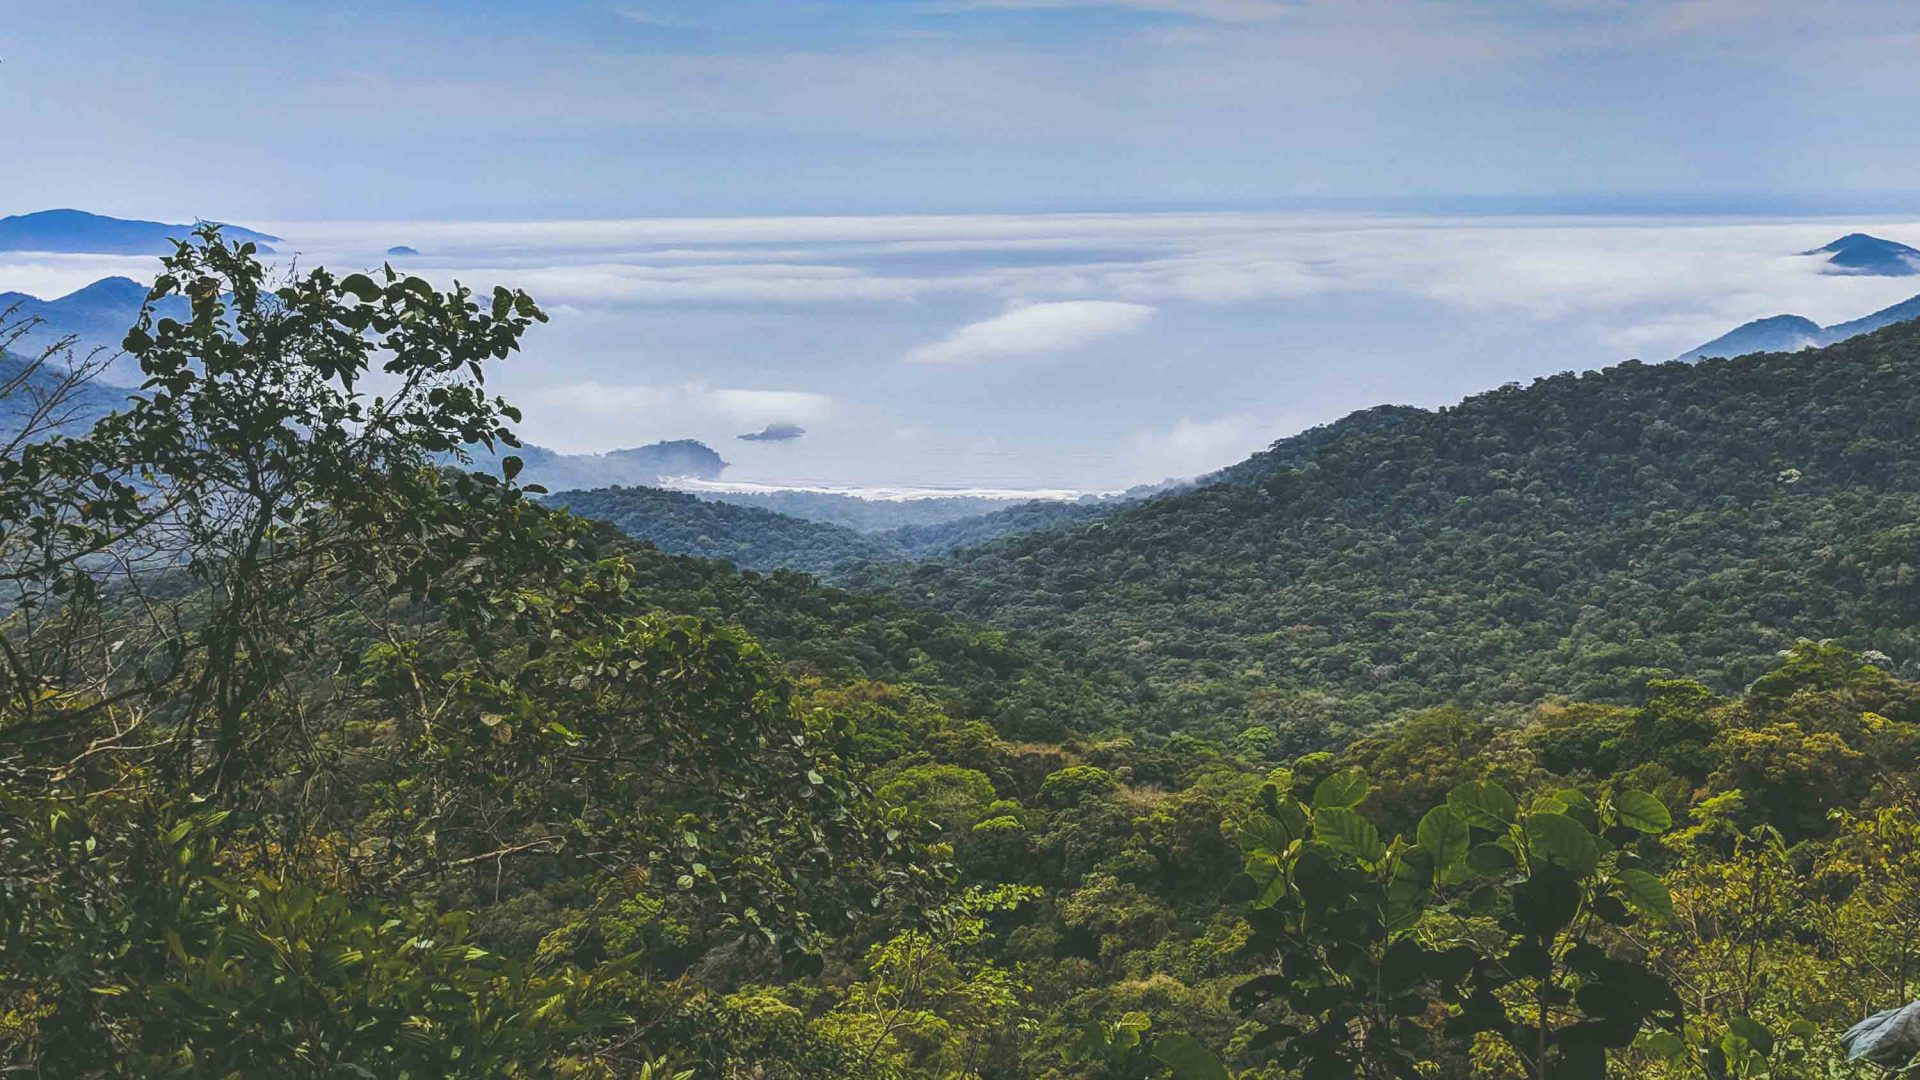 Atlantic forest covers some 85 percent of Ilhabela in Brazil.